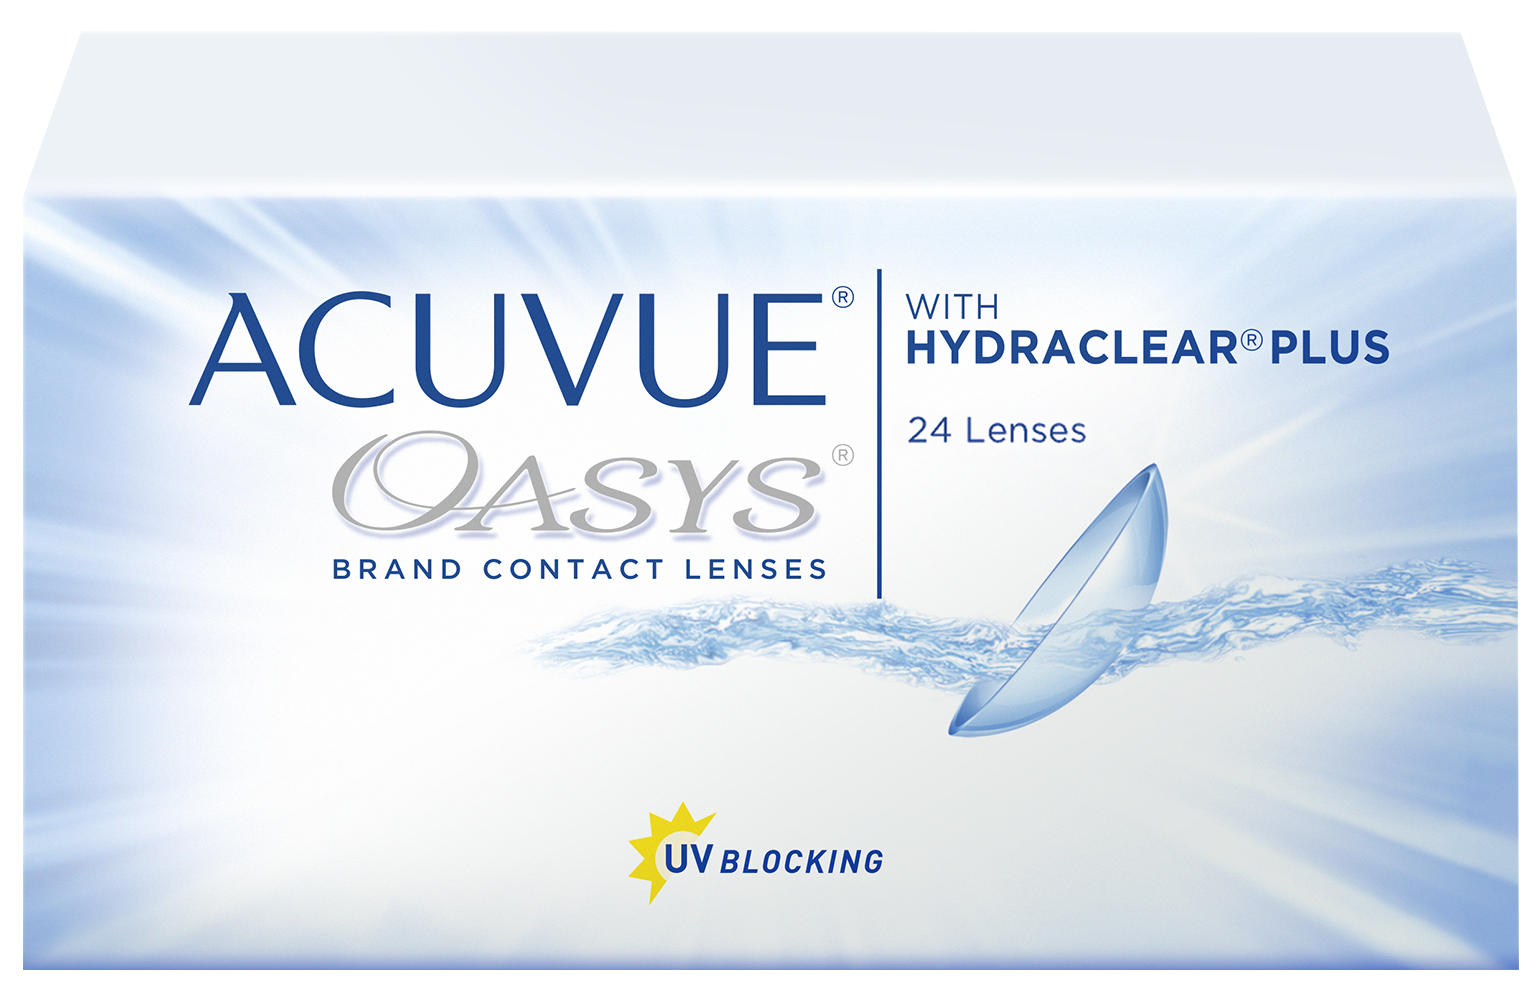 Hydraclear plus acuvue